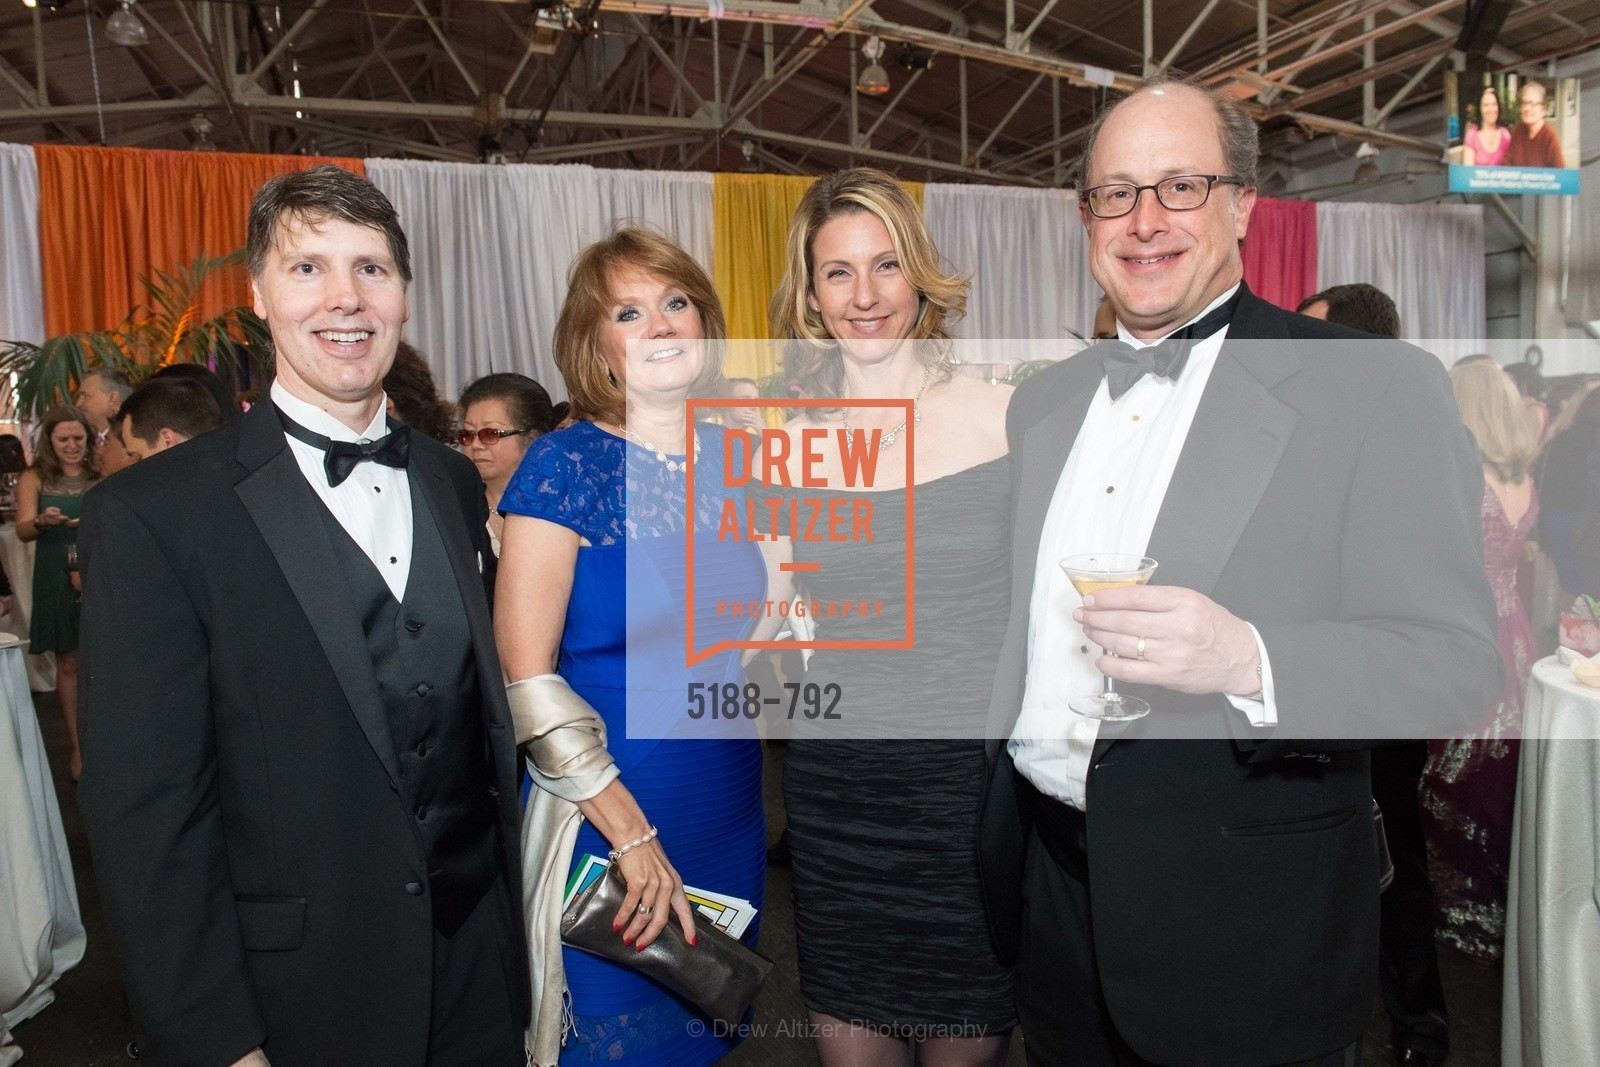 Tony Sladek, Rhonda Johnson, Jennifer Miller, David Miller, MEALS ON WHEELS OF SAN FRANCISCO'S 28th Annual Star Chefs and Vintners Gala, US, April 20th, 2015,Drew Altizer, Drew Altizer Photography, full-service agency, private events, San Francisco photographer, photographer california